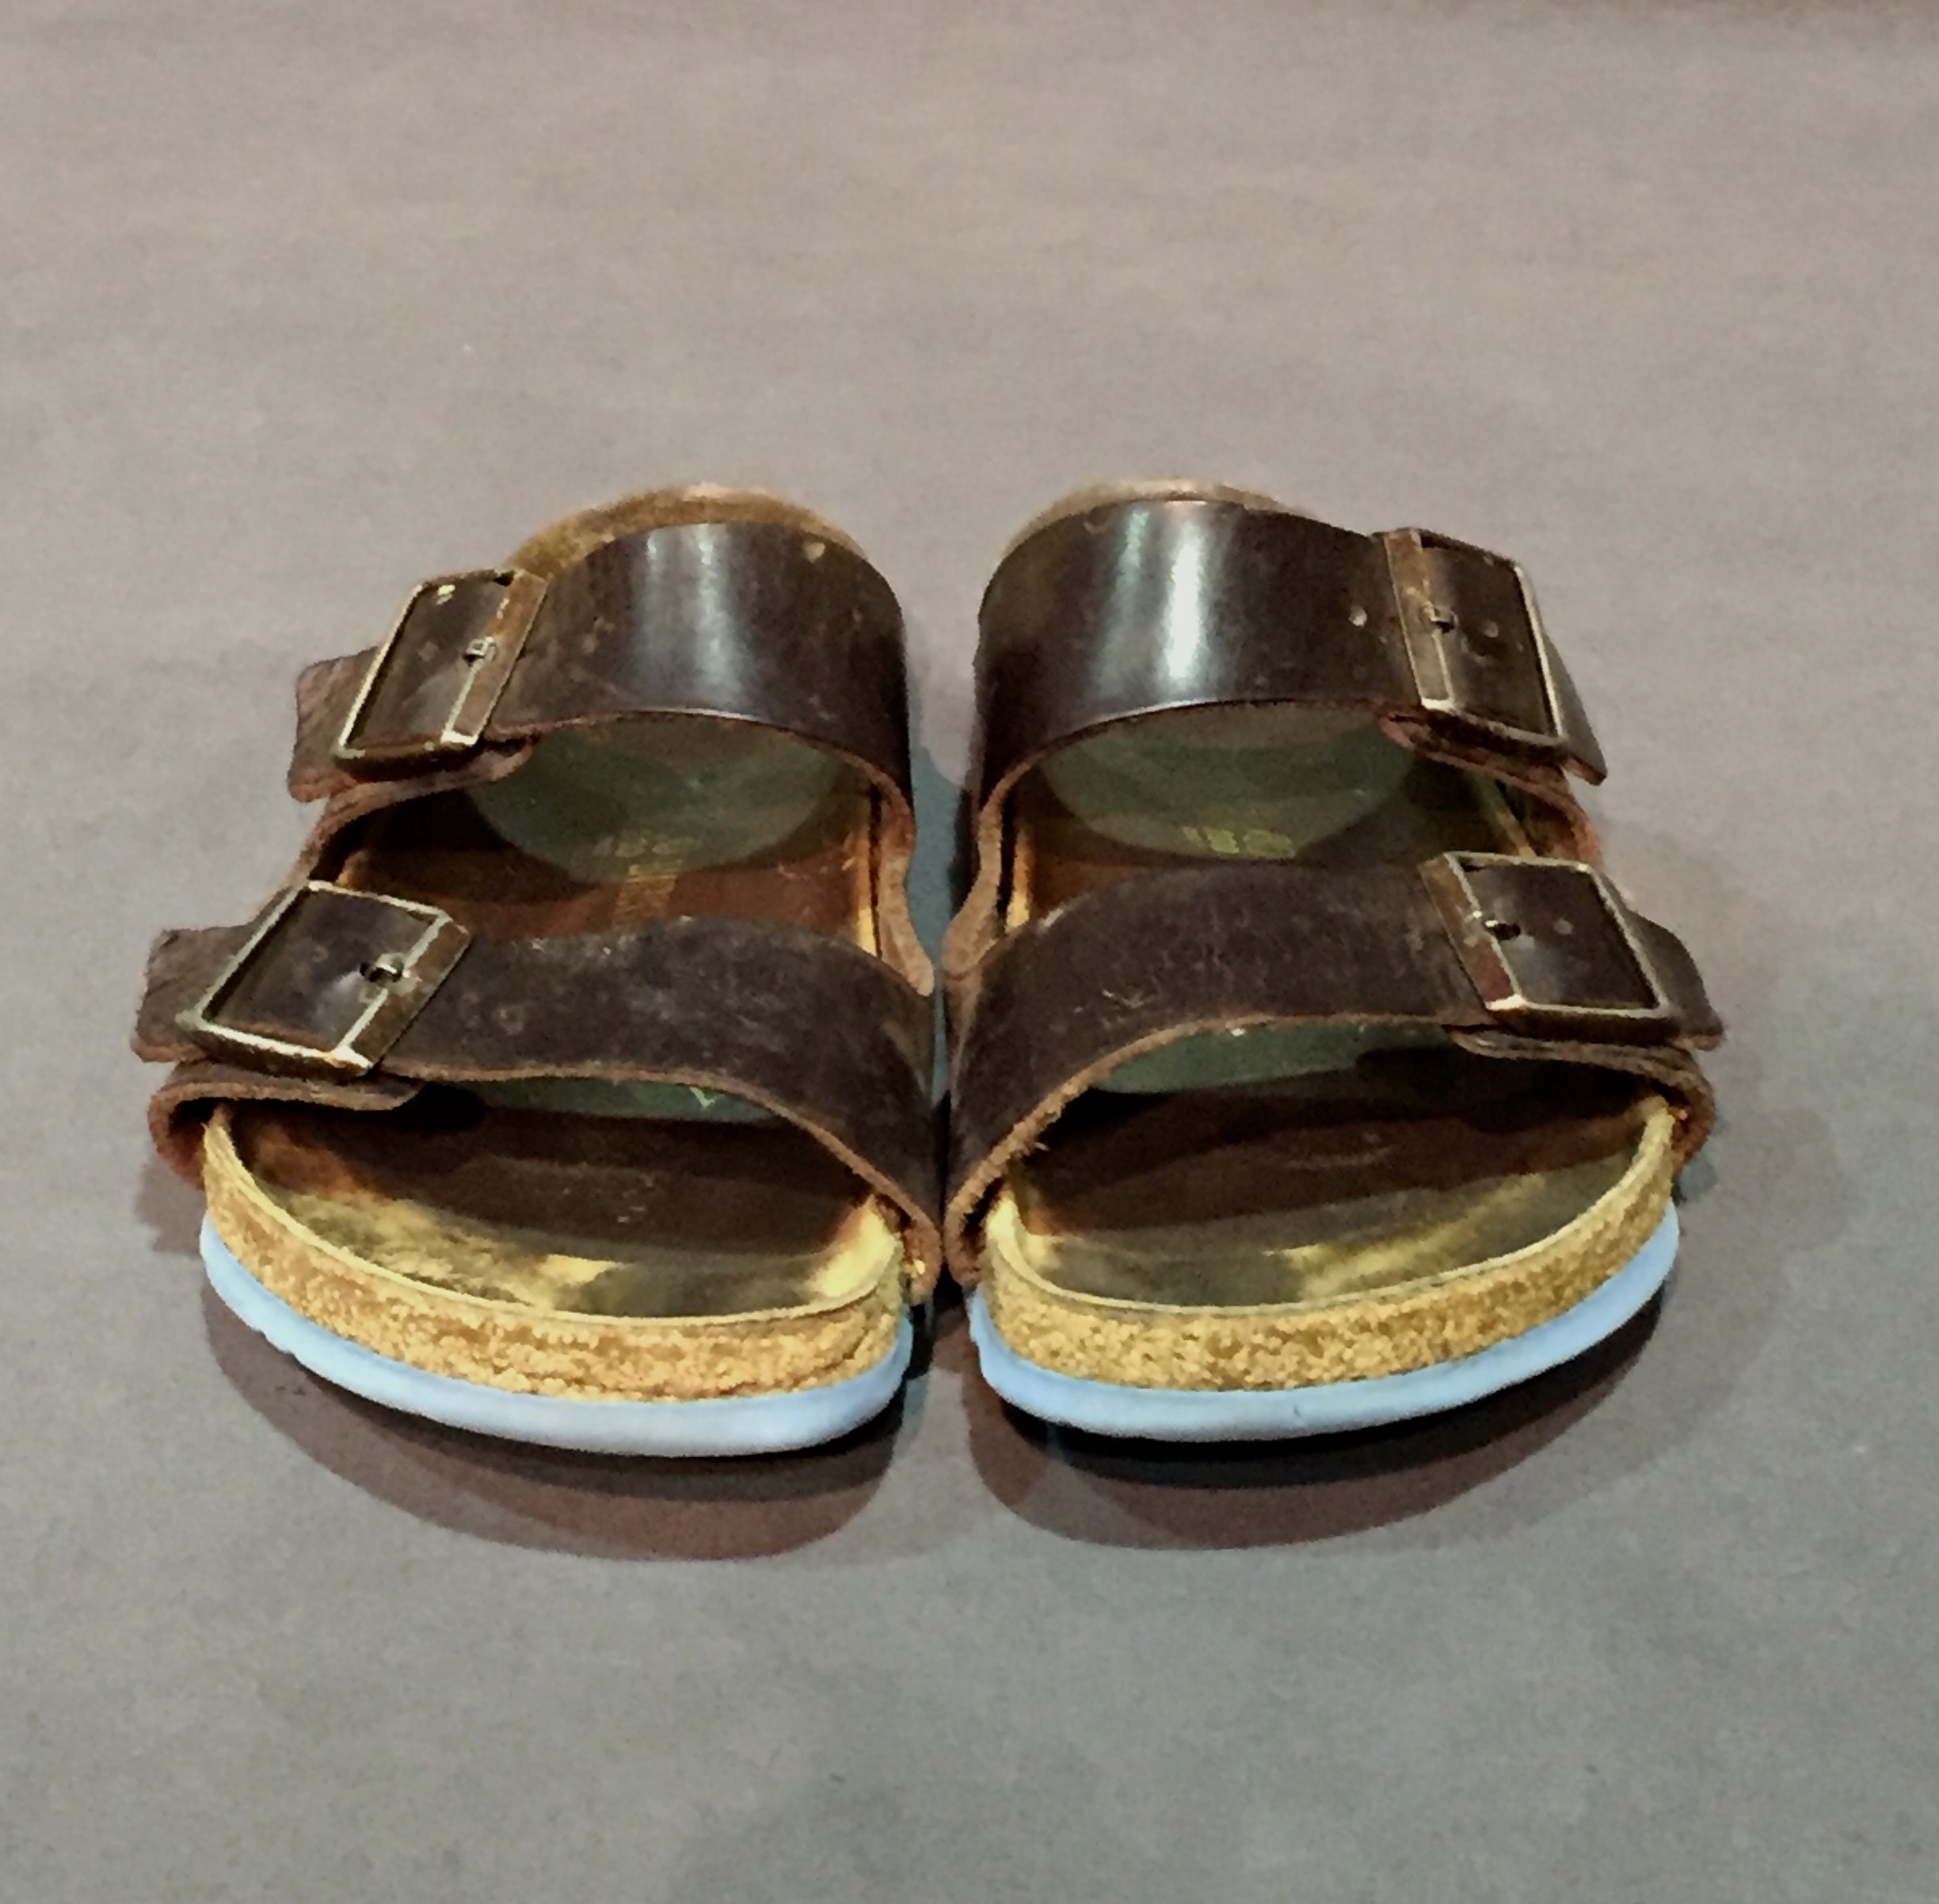 """- Birkenstocks (brown sandals); Owner – Cyndi, lesbian, woman, 42, lives in Iowa; c. 2010s""""I had worn some sort of dress pant with Birkenstocks and I had a thumb ring on, and he was like, 'oh man, you're an old-school dyke' and I was like 'No I'm not, I don't have ill-fitting pants, I have short spikey hair.' So, we had a whole conversation because he was actually really close to my age, but having someone refer to me as an 'old-school dyke' because I had Birkenstocks and a thumb ring was really interesting to hear, cause I didn't think about that."""" – personal interview with Cyndi, November 21, 2017"""